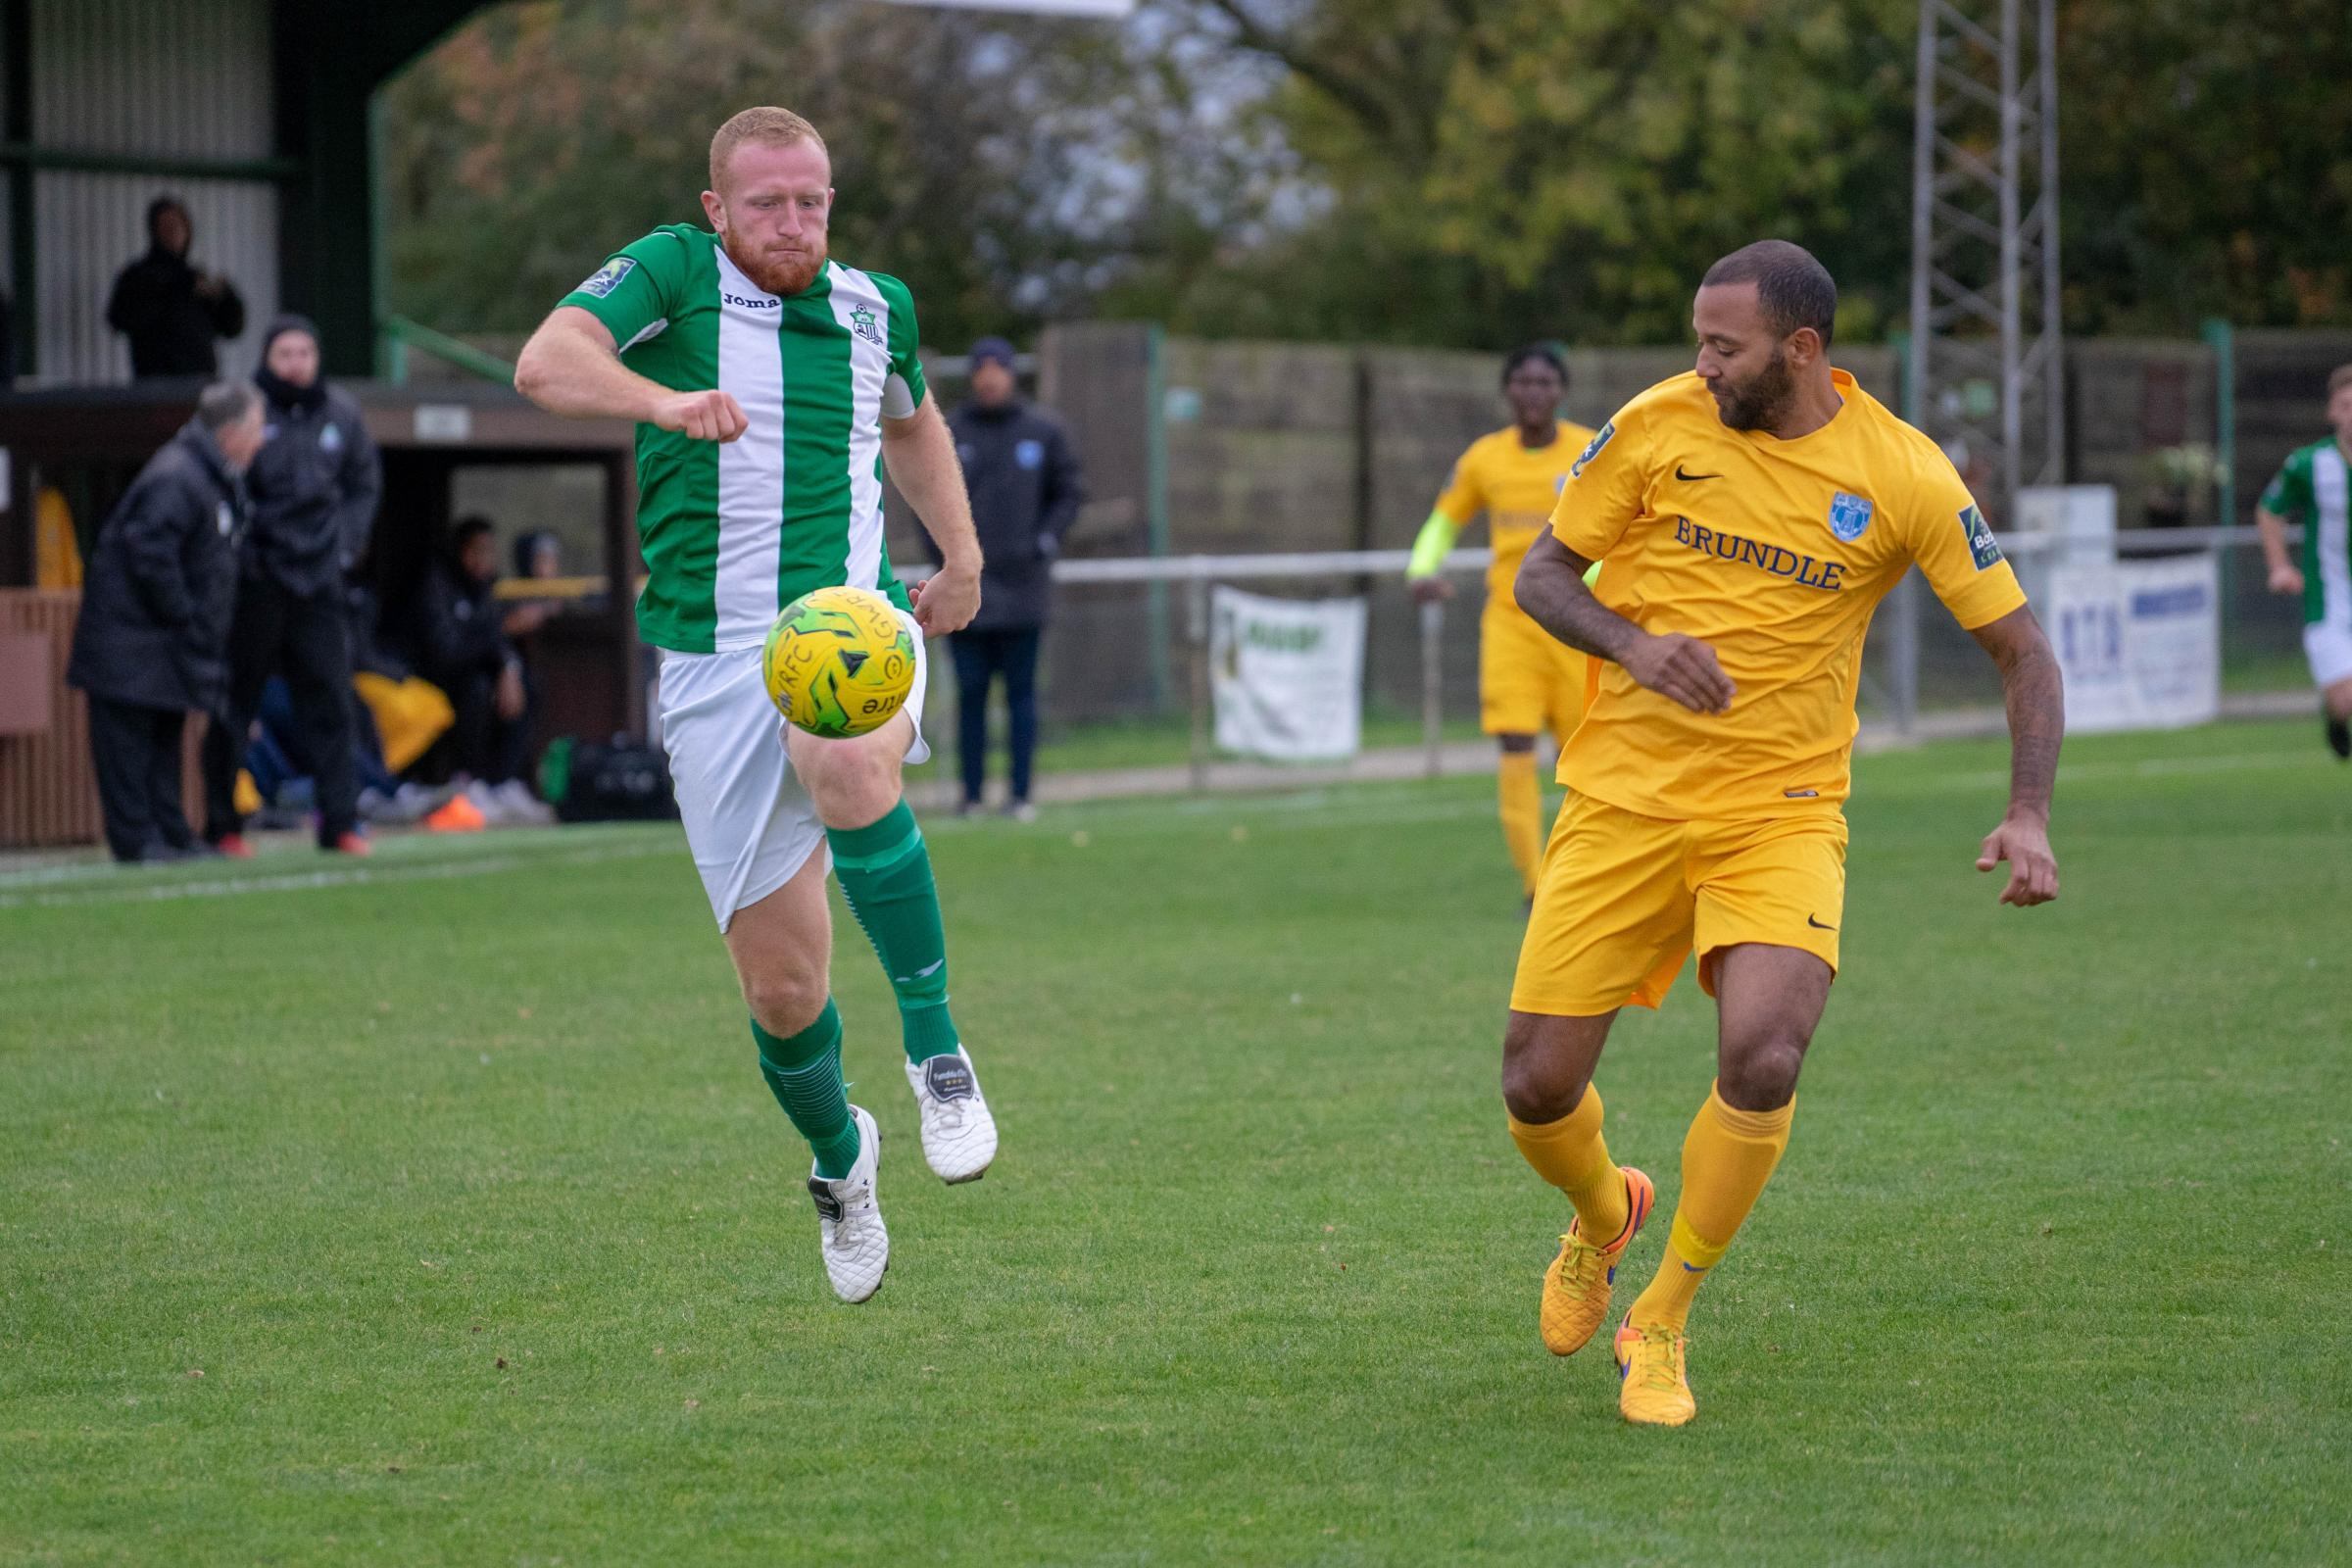 Winner - Adam Vyse, who joined from Great Wakering Rovers earlier this month, struck